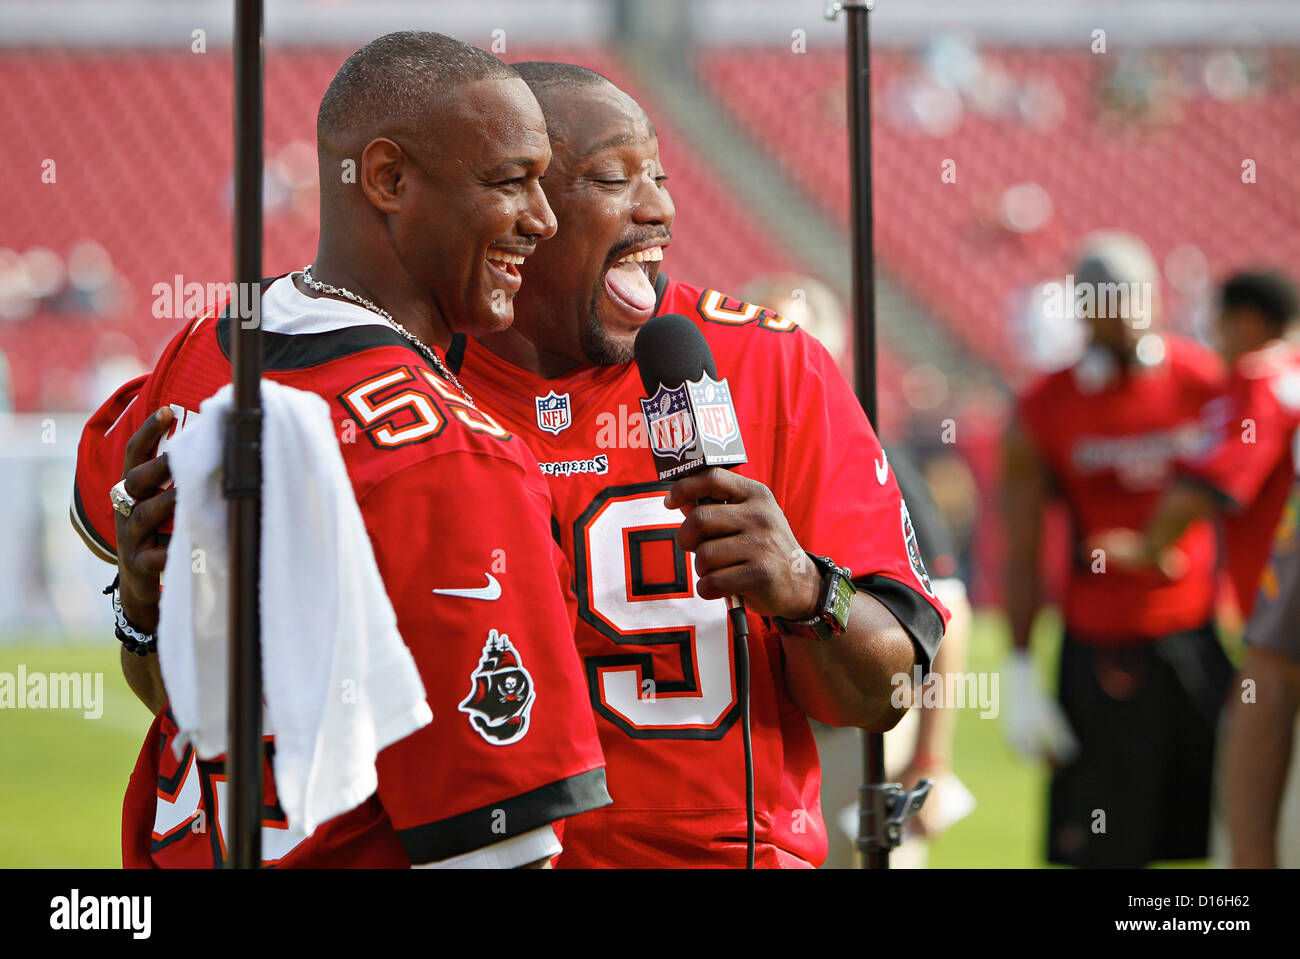 Dec. 9, 2012 - Florida, U.S. - Tampa) Tampa Bay Buccaneers 2002 Superbowl team members Derrick Brooks, left, and - Stock Image